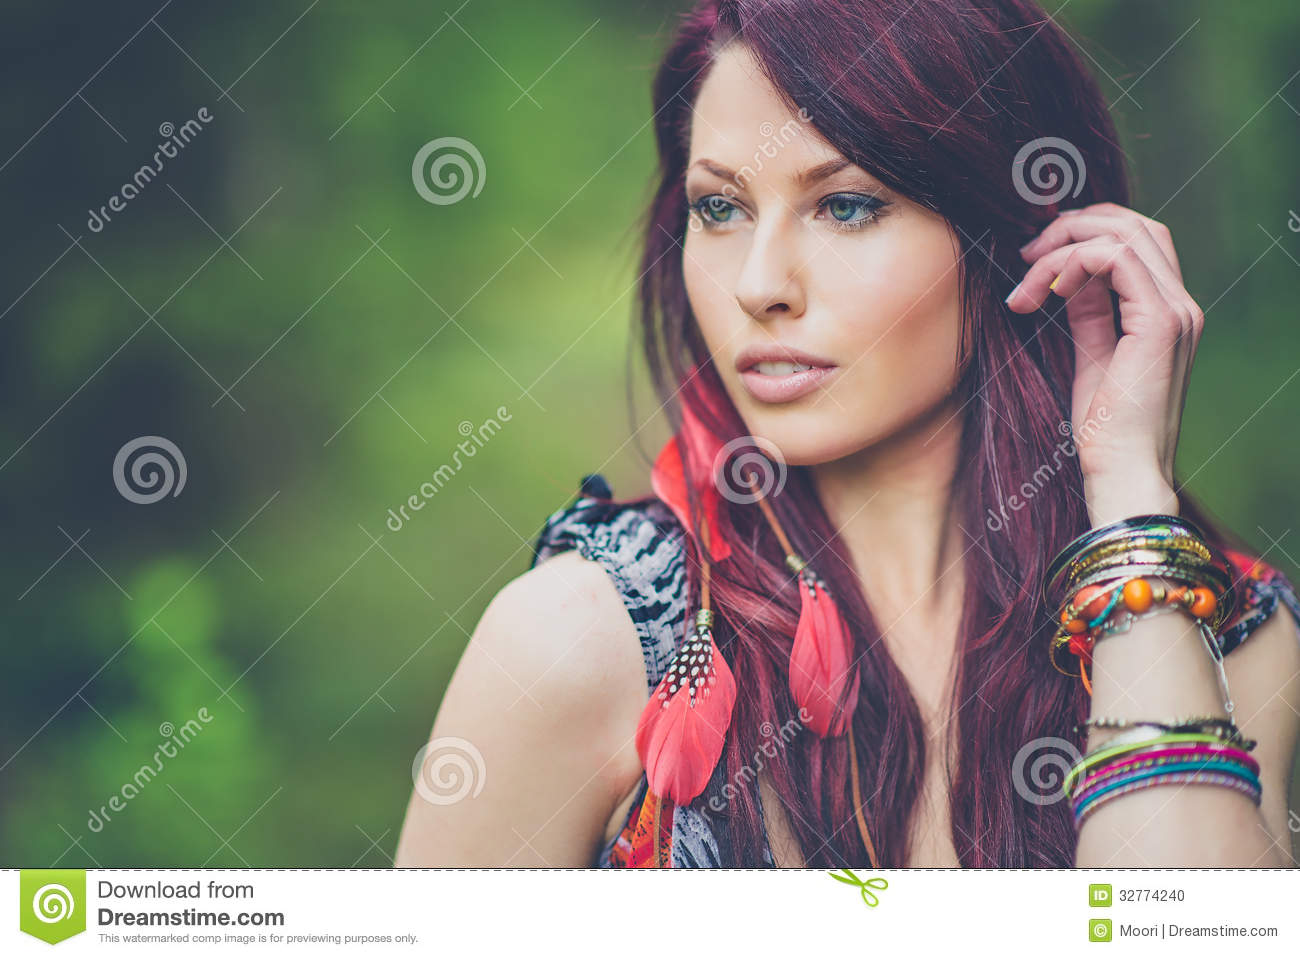 Stock Photo  Young Hippie Girl In Boho Fashion  Image  32774240